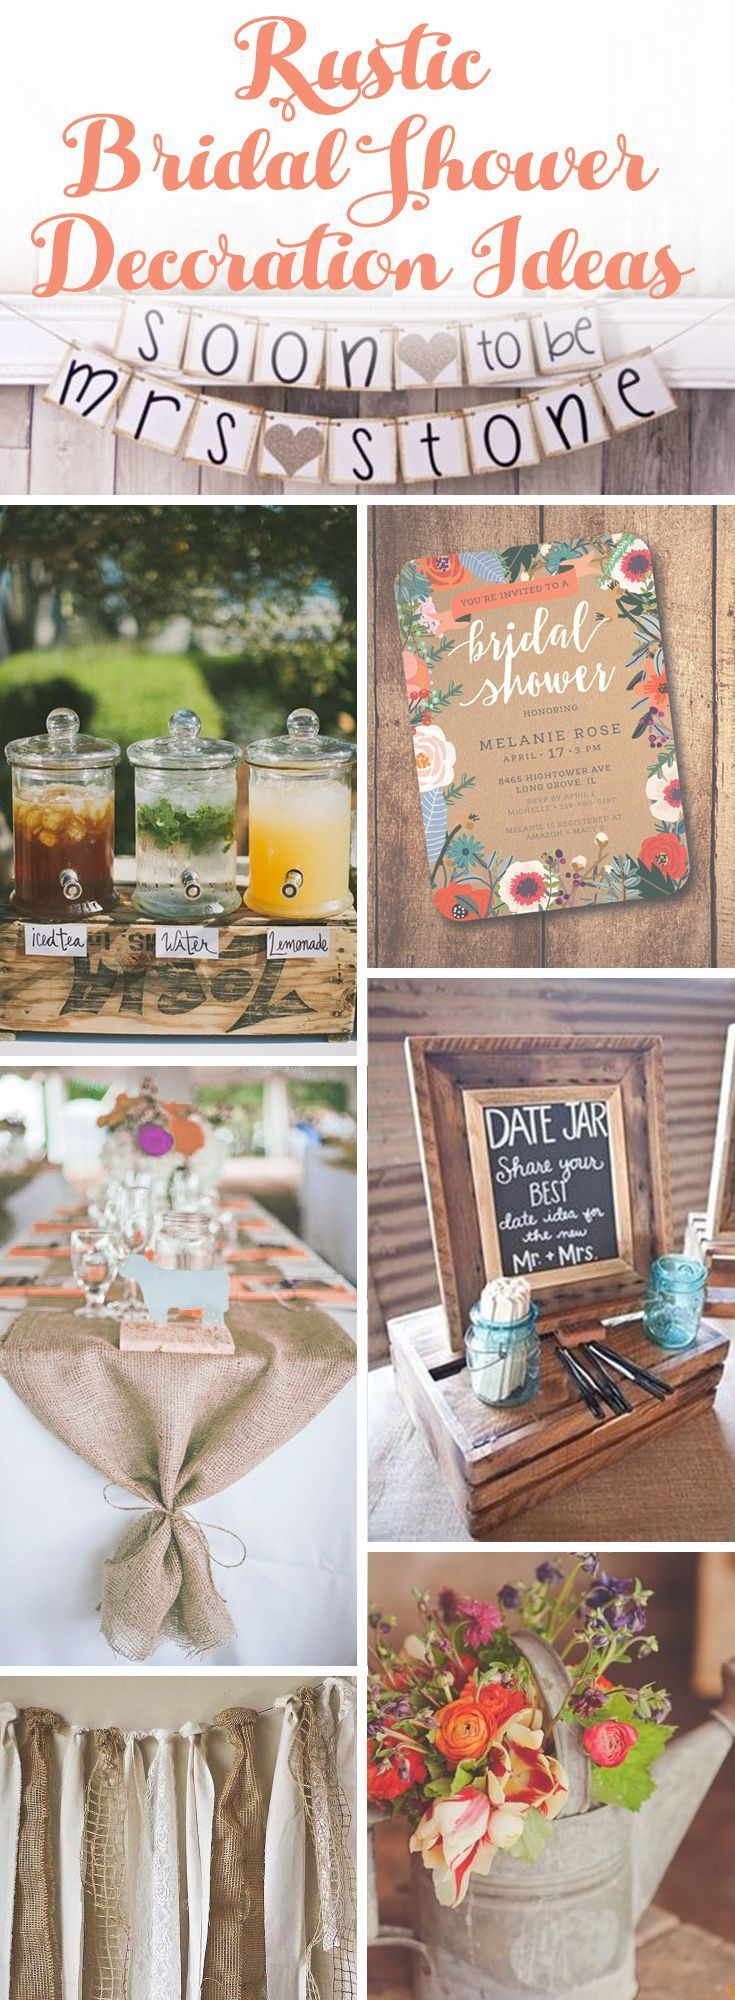 2016 Bridal Shower Ideas for rustic themed